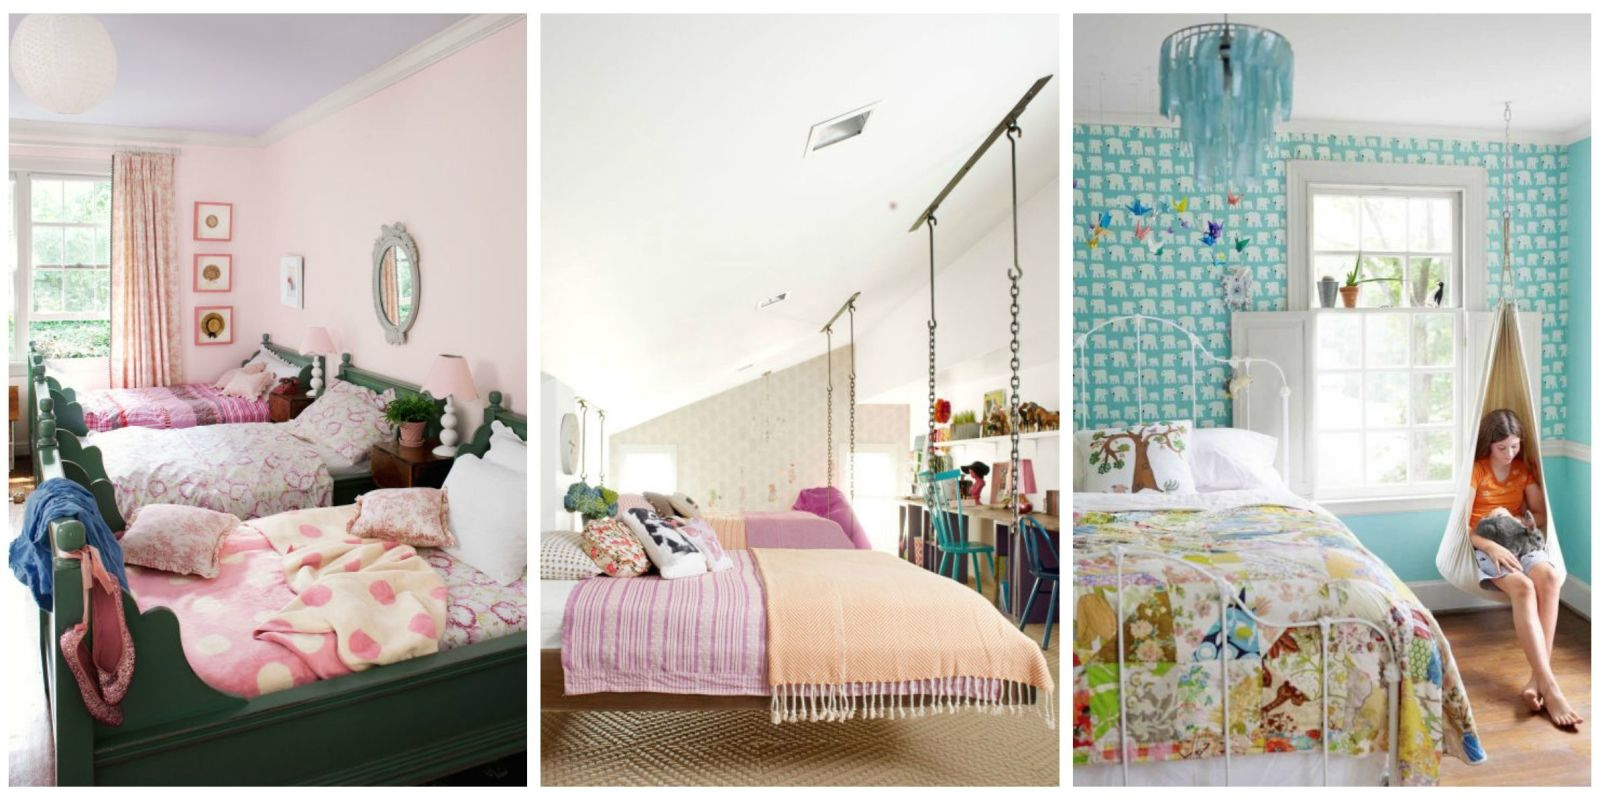 12 Fun Girl's Bedroom Decor Ideas - Cute Room Decorating ... on Girls Room Decor  id=70476